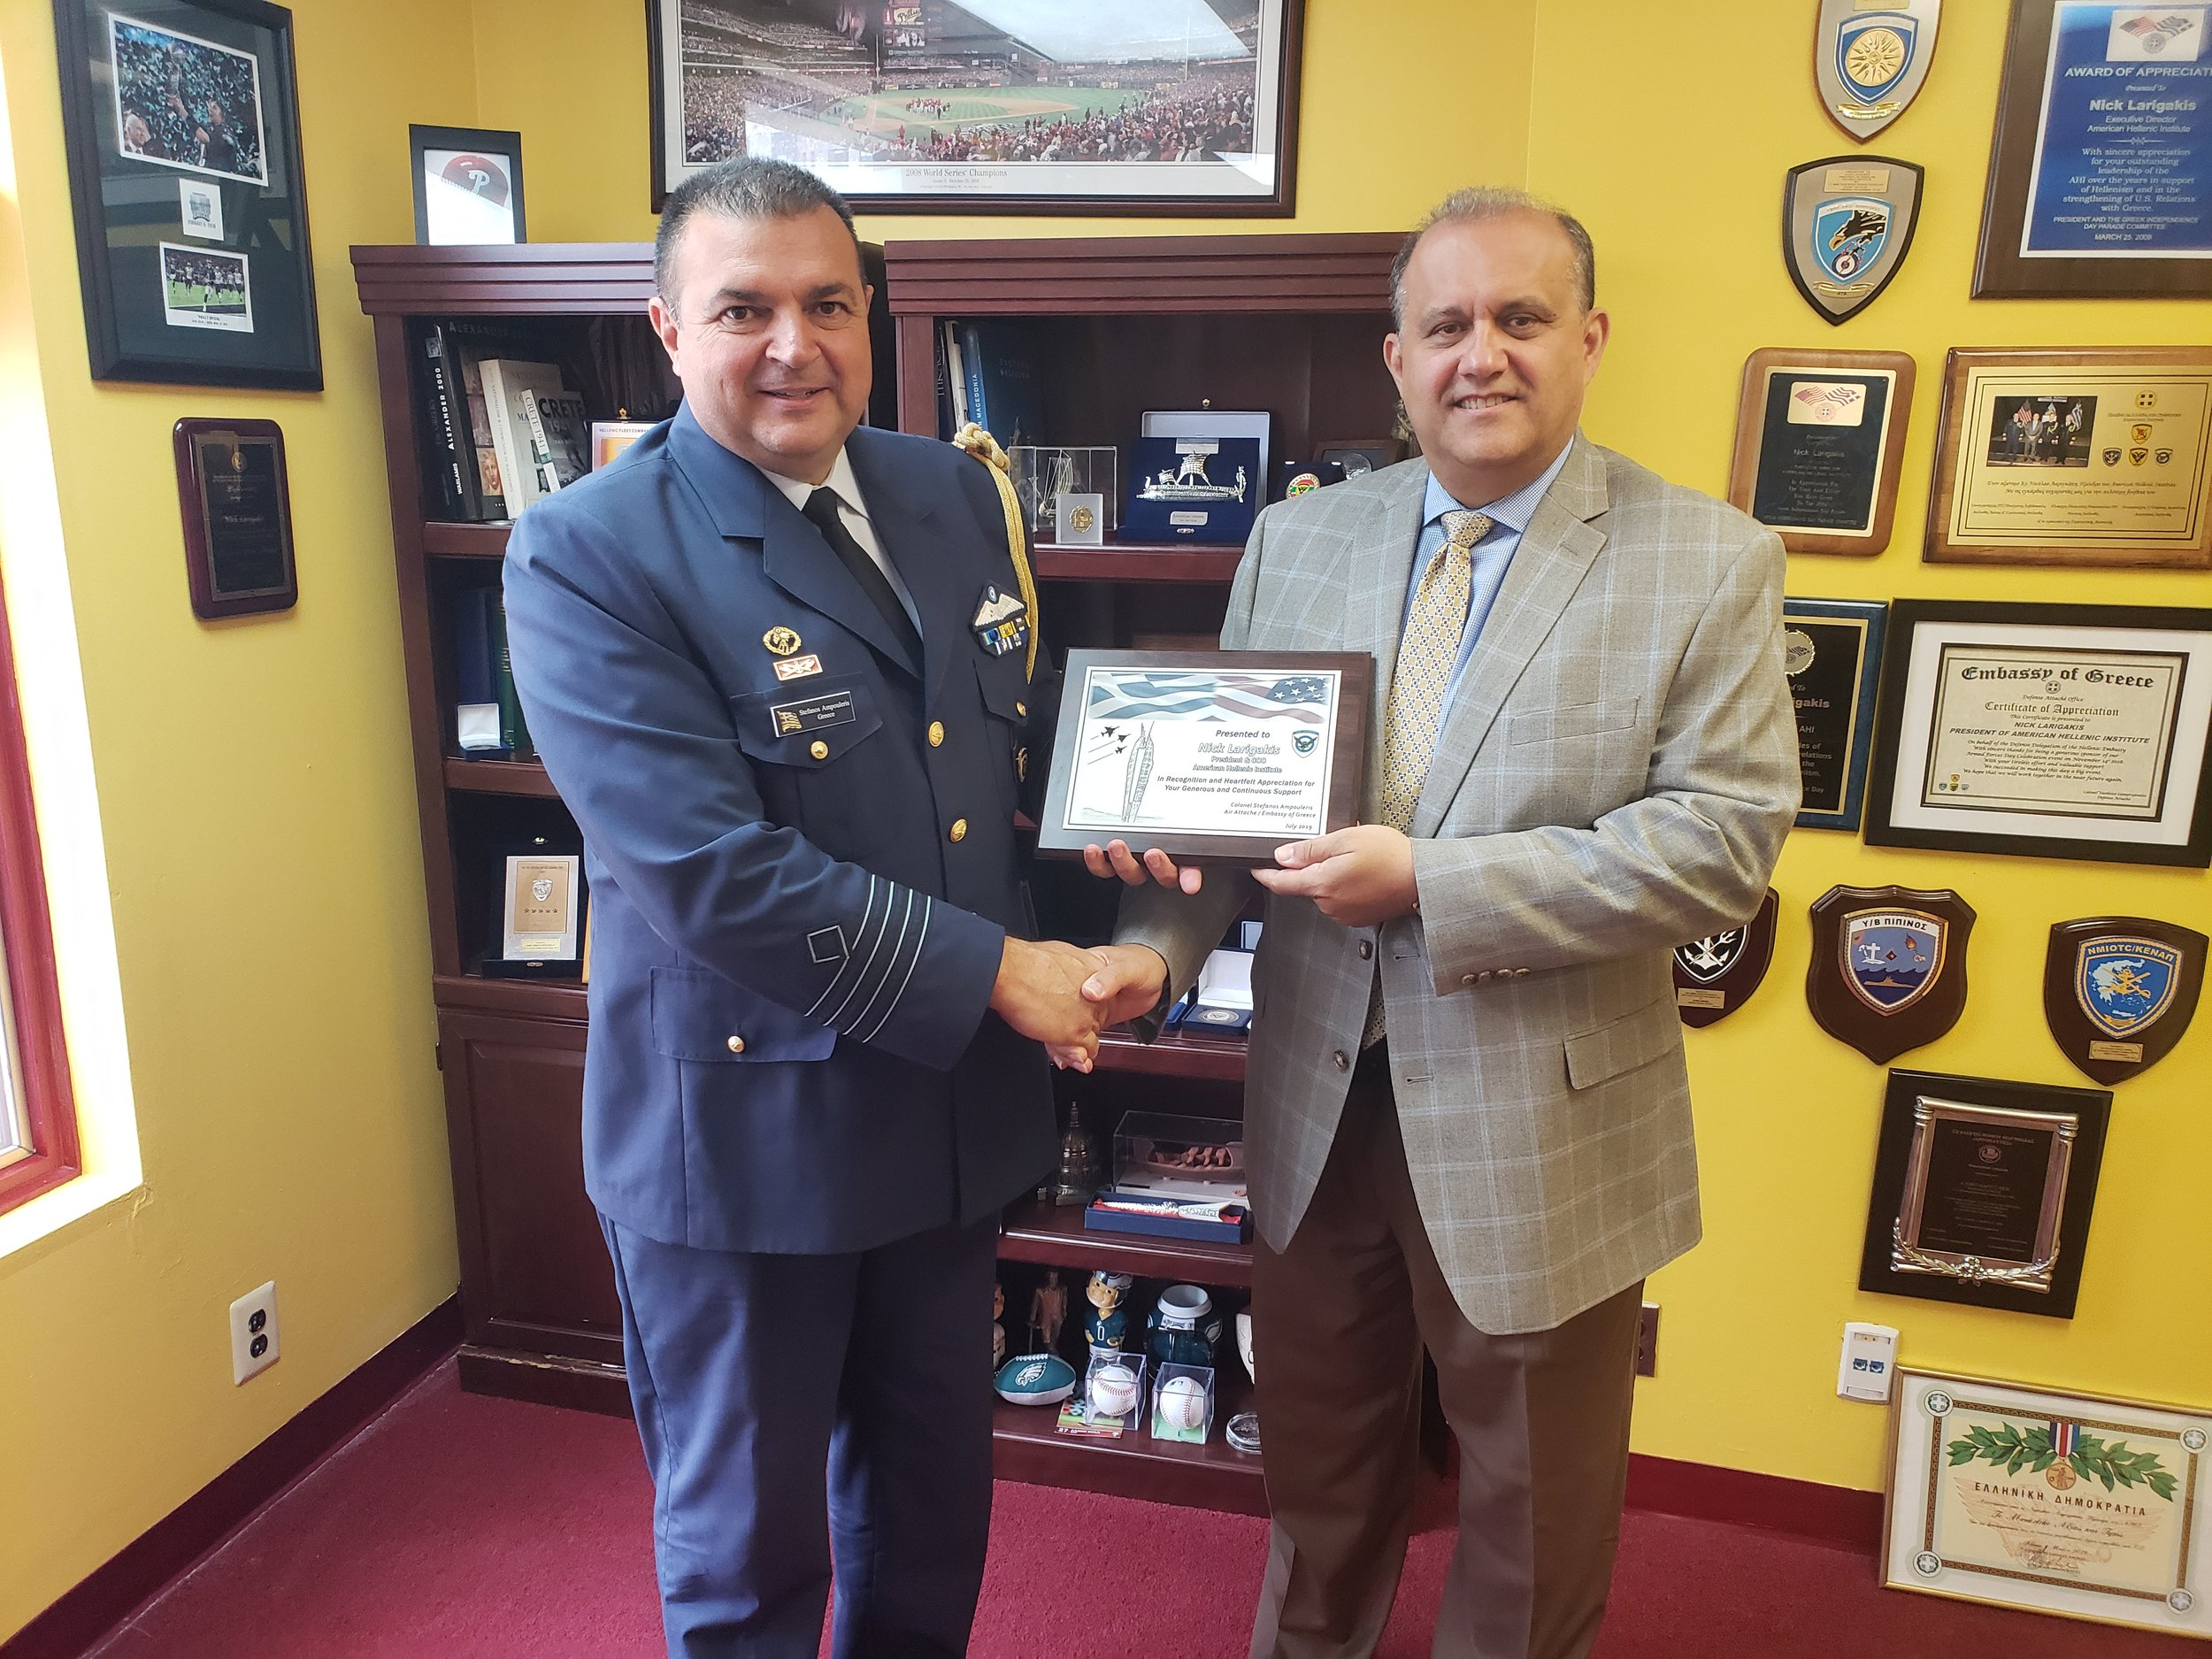 (L-R) Col. Stefanos Ampouleris, Air attaché at the Embassy of Greece in Washington, D.C., bestowing citation to AHI President Larigakis